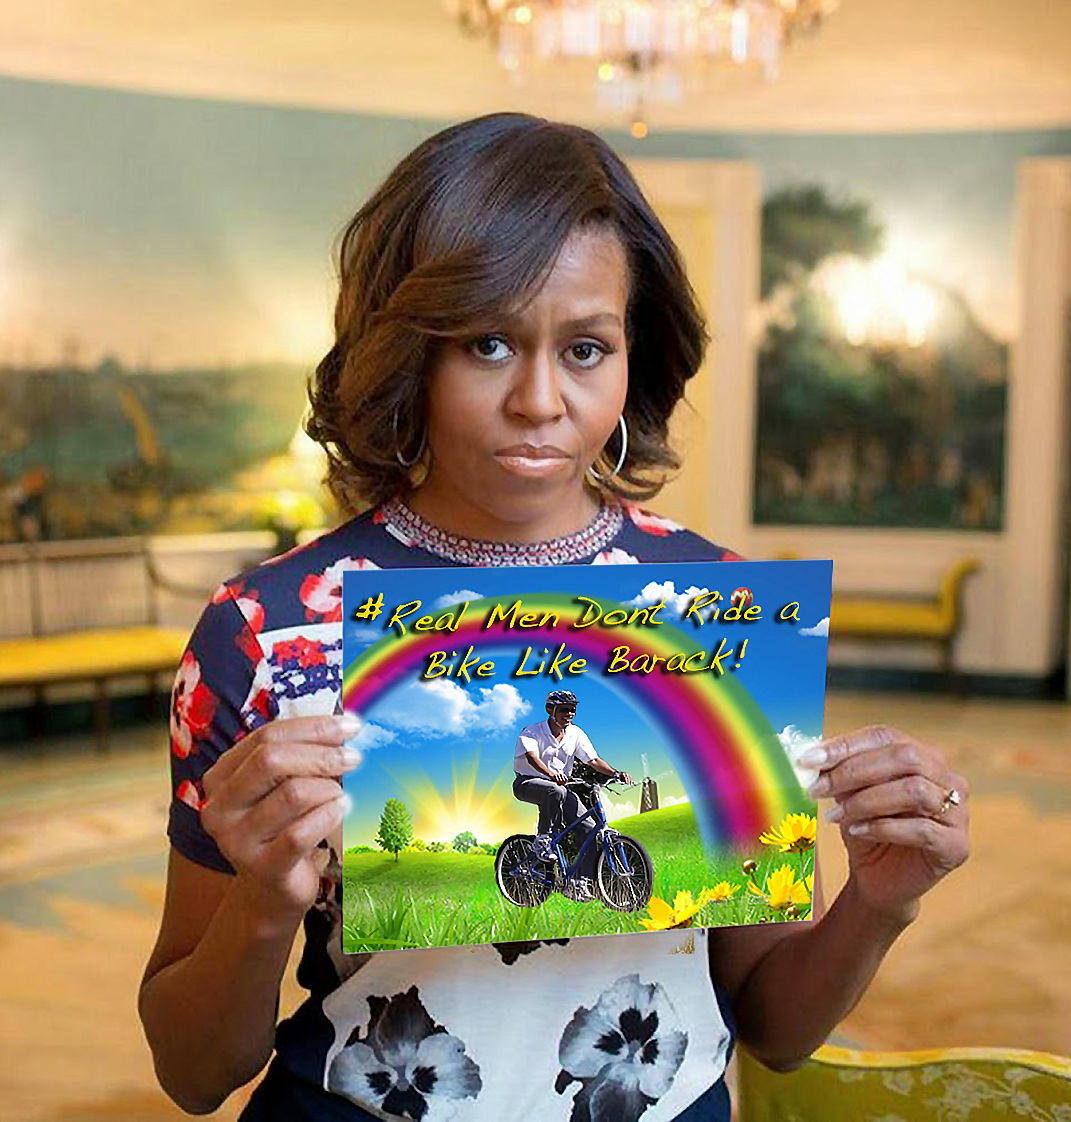 obama photoshop fun round 2�michelle obama hashtag pic